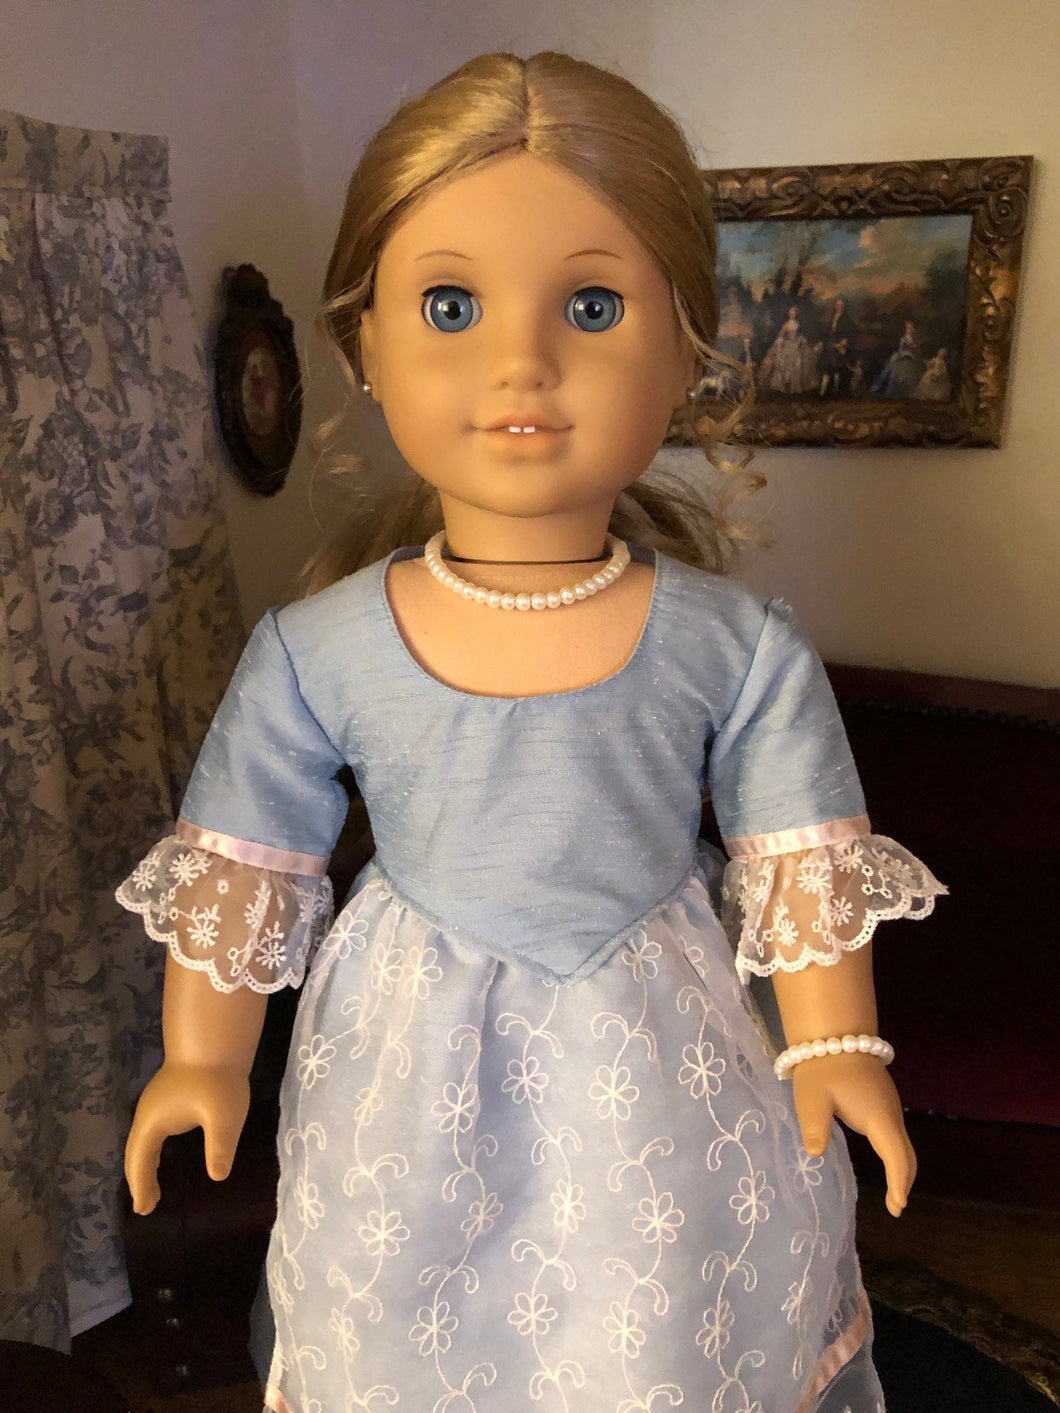 Pearl Necklace & Bracelet for 18 Inch American Girl Dolls